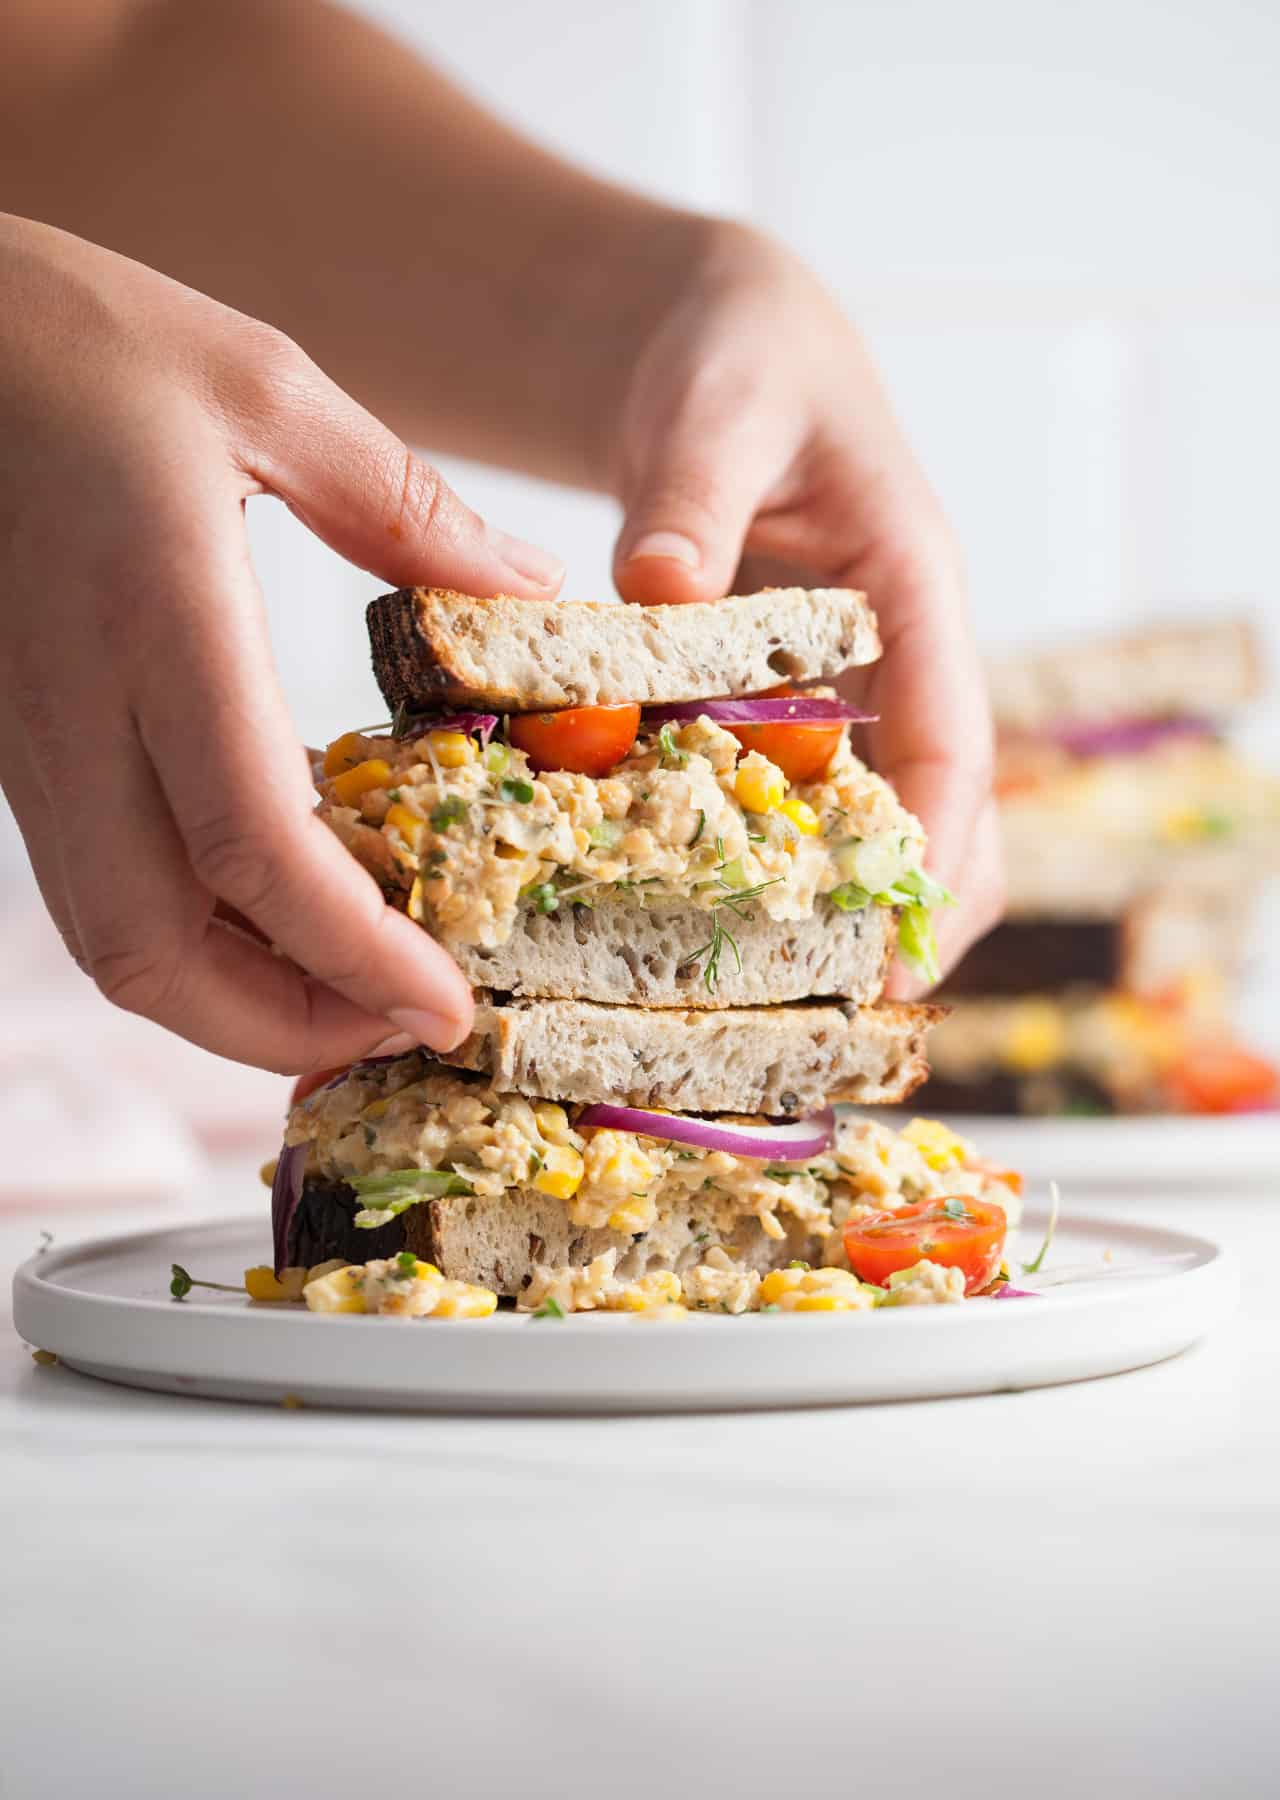 Vegan Chickpea 'Tuna' Sandwich